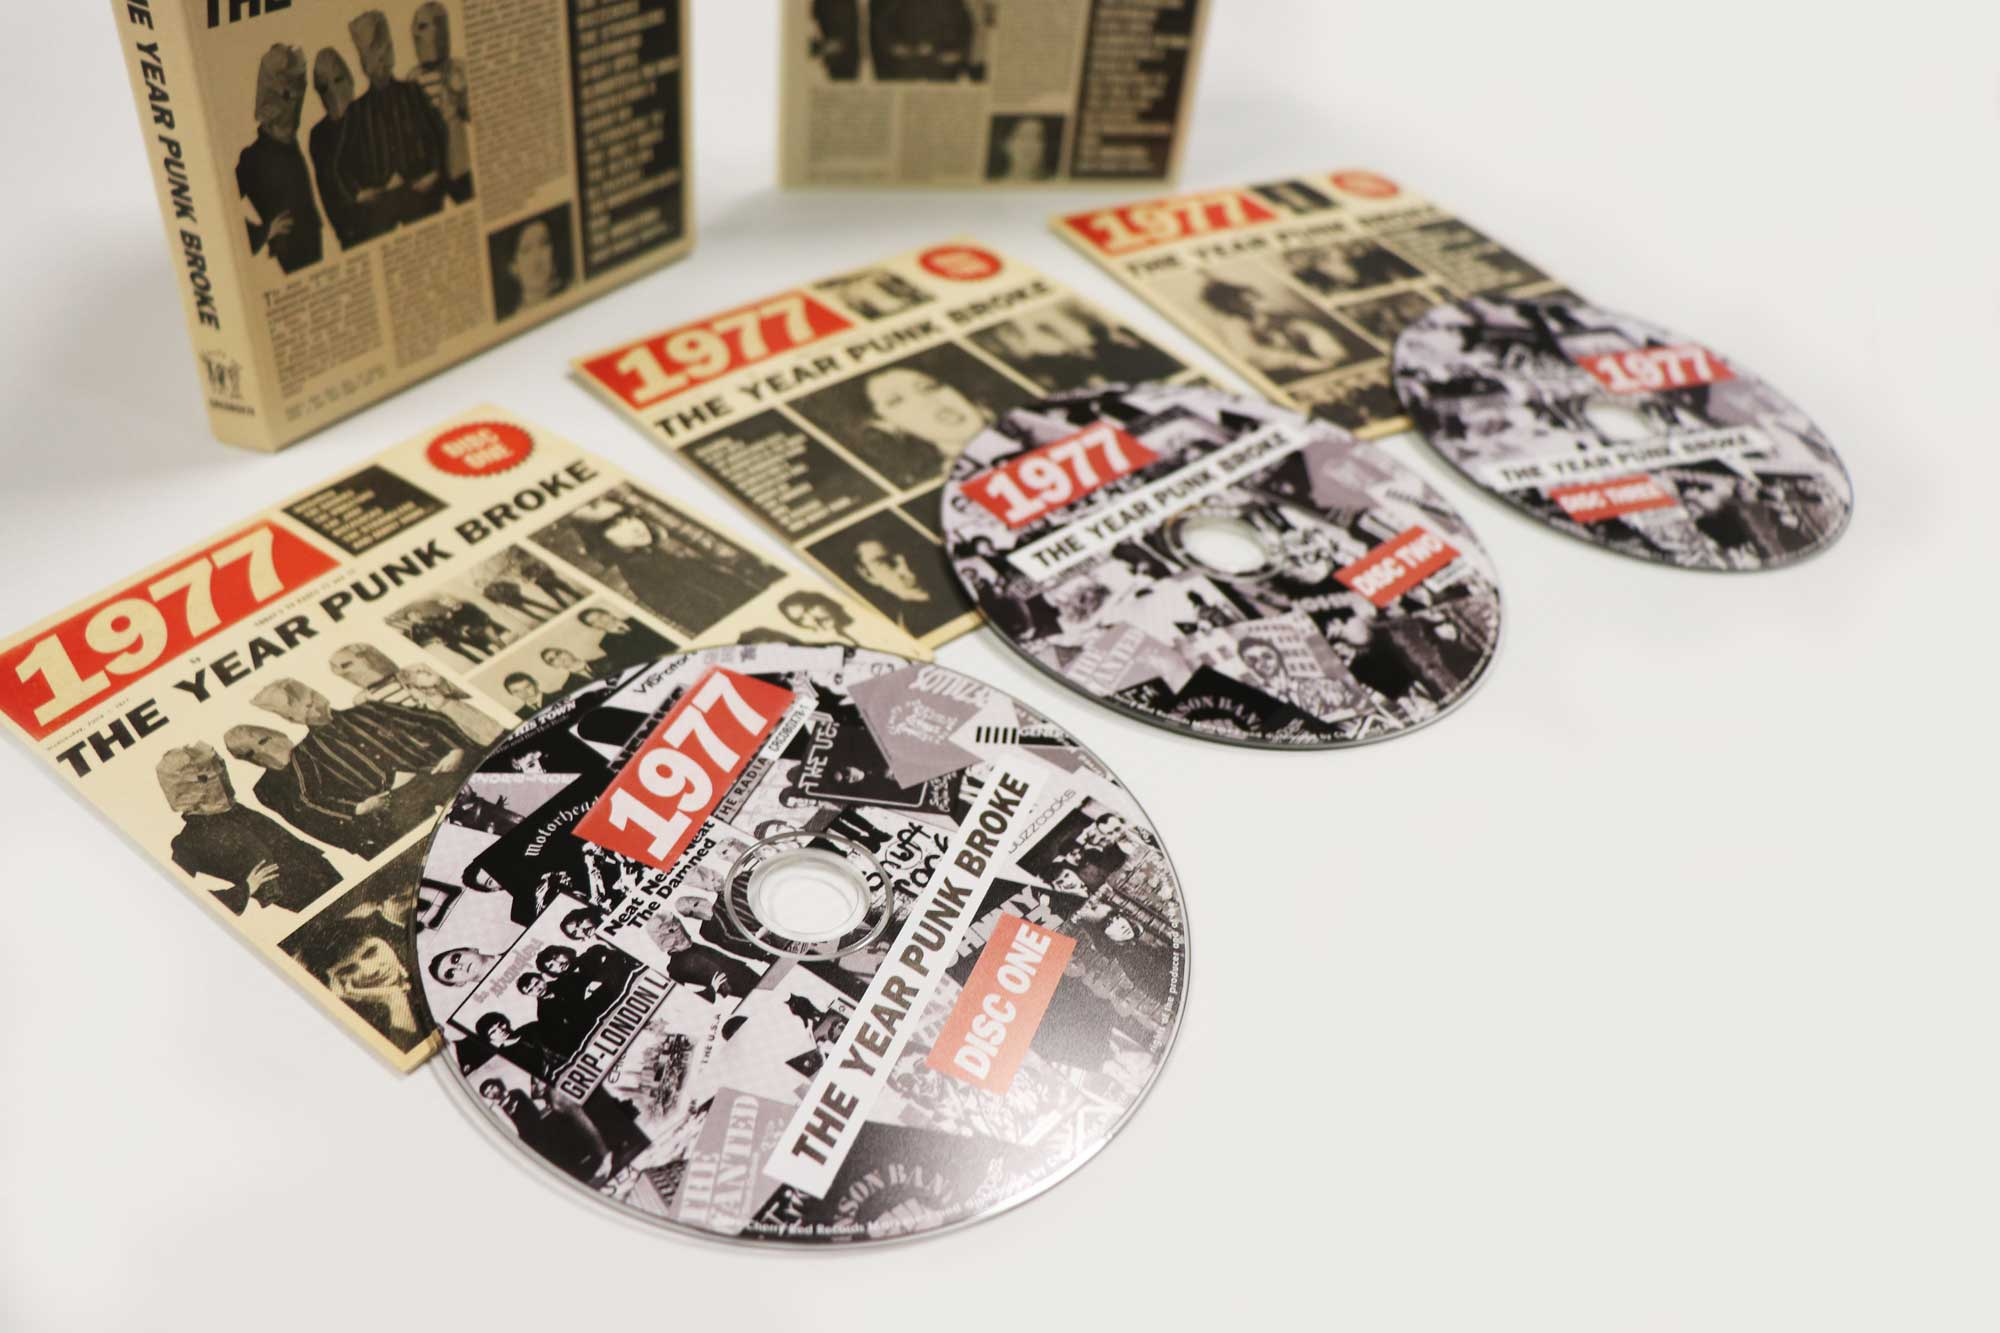 Rewind to 1977 with our new 3CD Box Set exploring the year